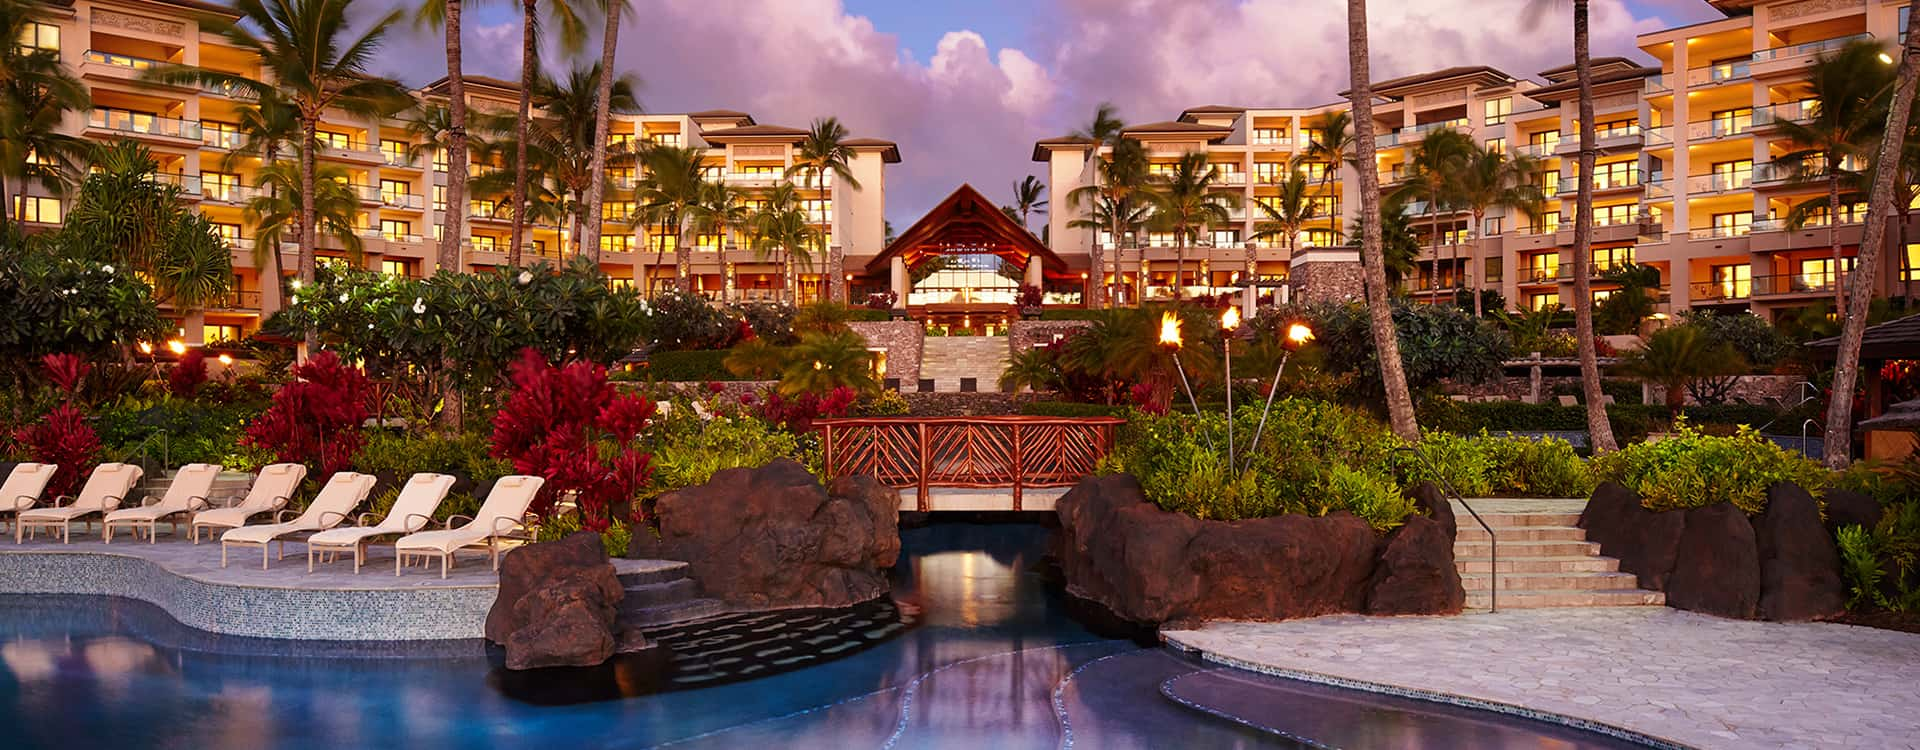 aec69e6f5415 Maui Hotels - Luxury Hawaii Beach Resort